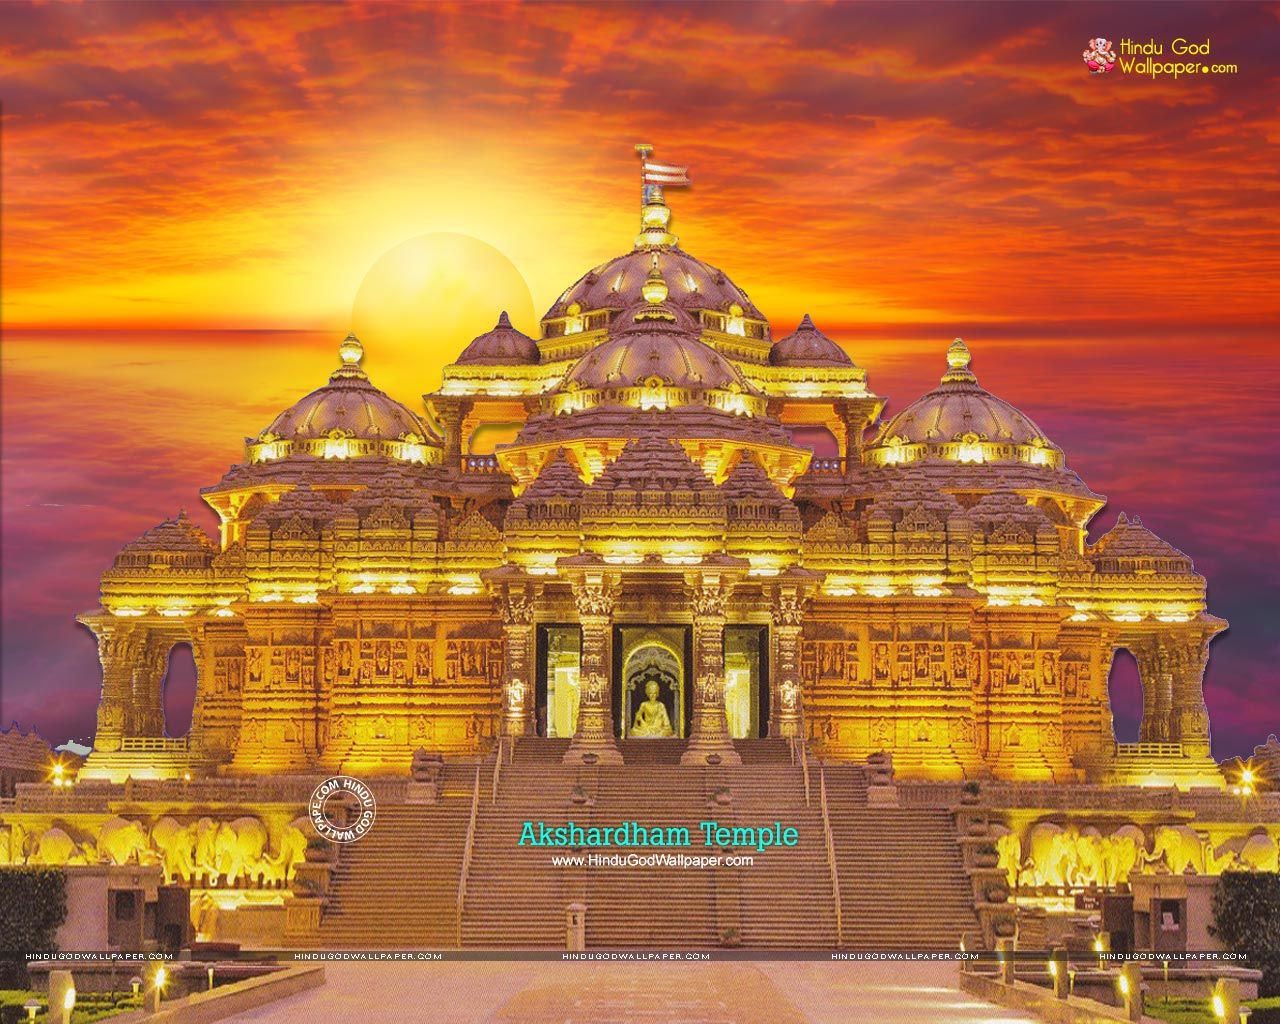 Akshardham mandir wallpapers photos images download temples akshardham mandir wallpapers photos images download thecheapjerseys Gallery